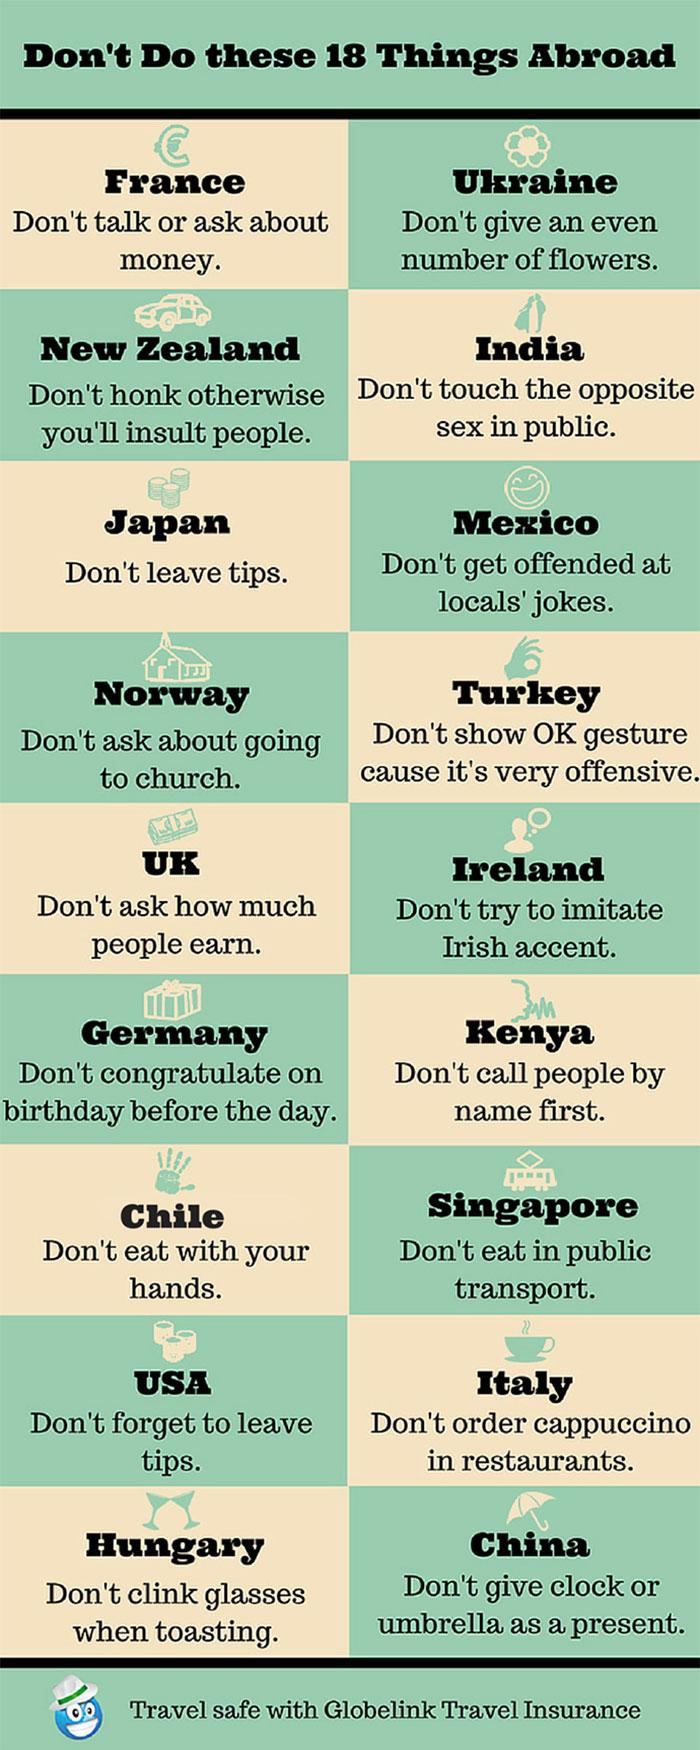 18 Things You Don't Do Abroad - Safe Travels